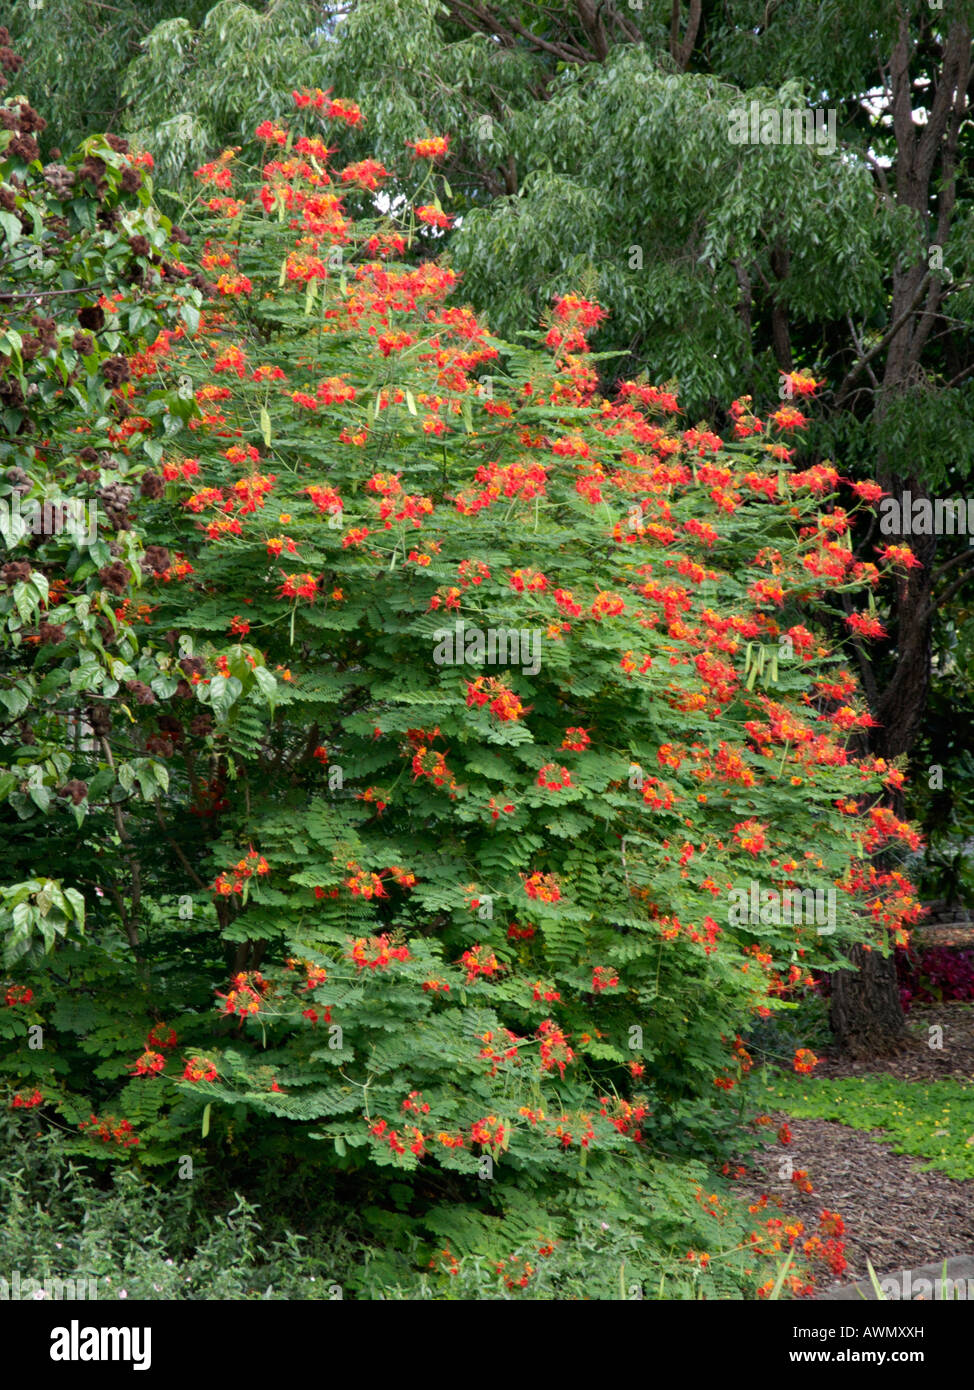 Pride Of Barbados Caesalpinia Pulcherrima Stock Photo 16617304 Alamy